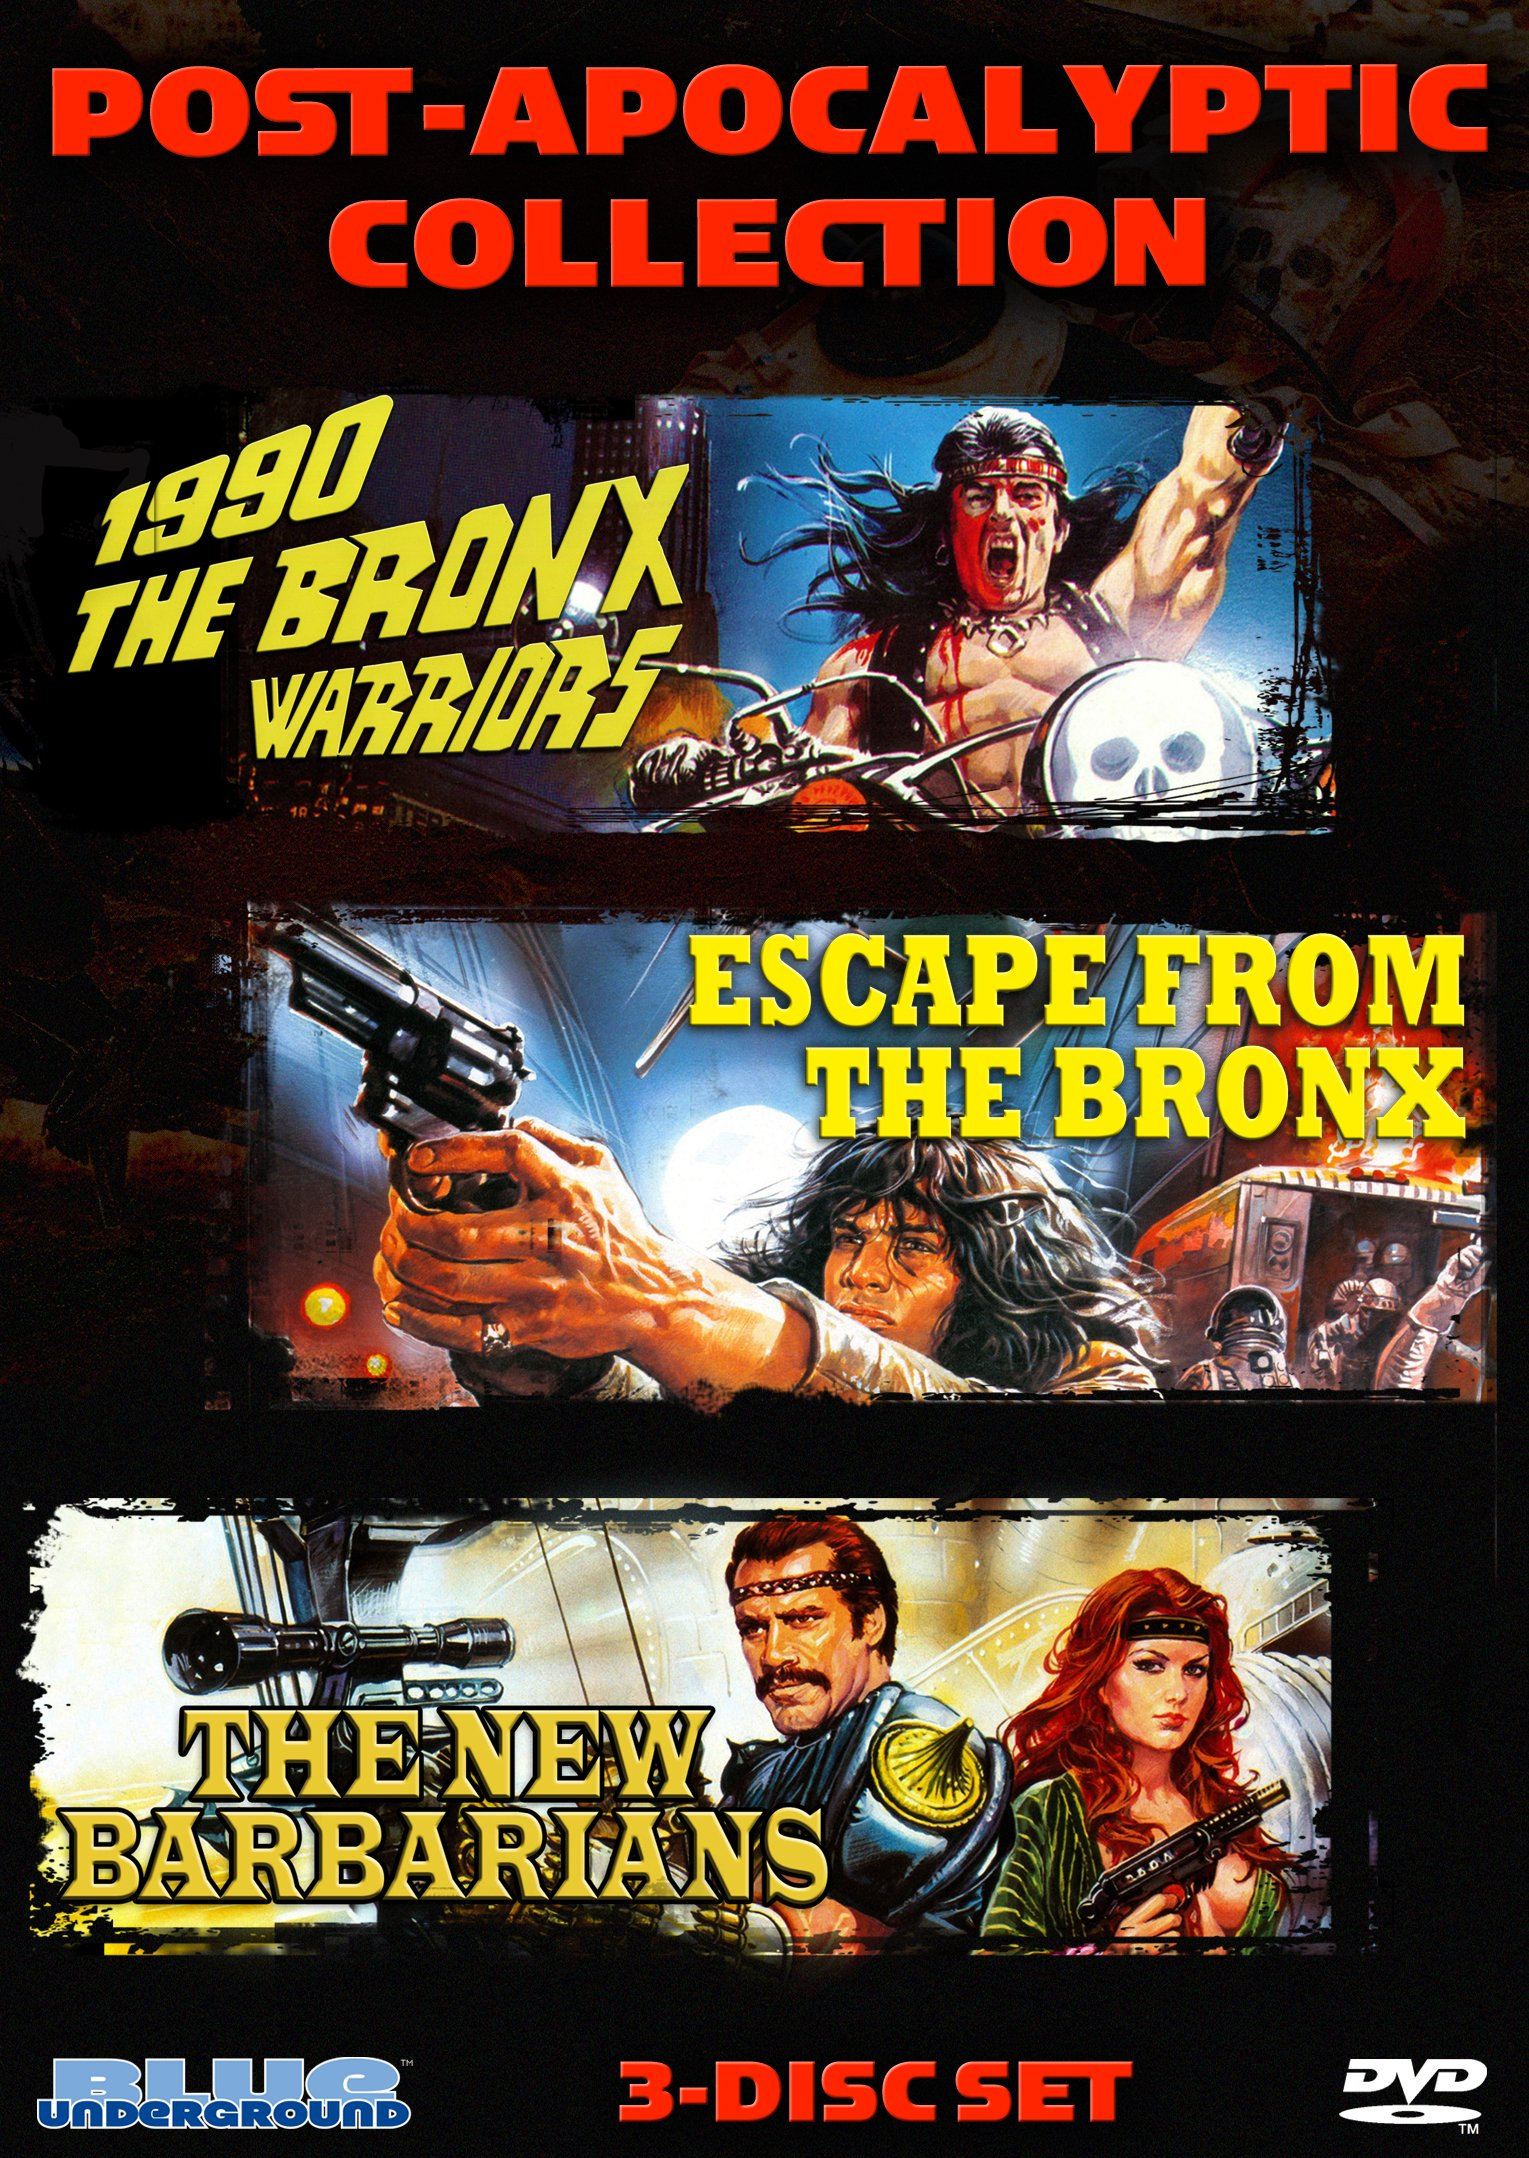 Post-Apocalyptic Collection (3-Disc DVD Set) (1990: The Bronx Warriors / Escape From The Bronx / The New Barbarians)